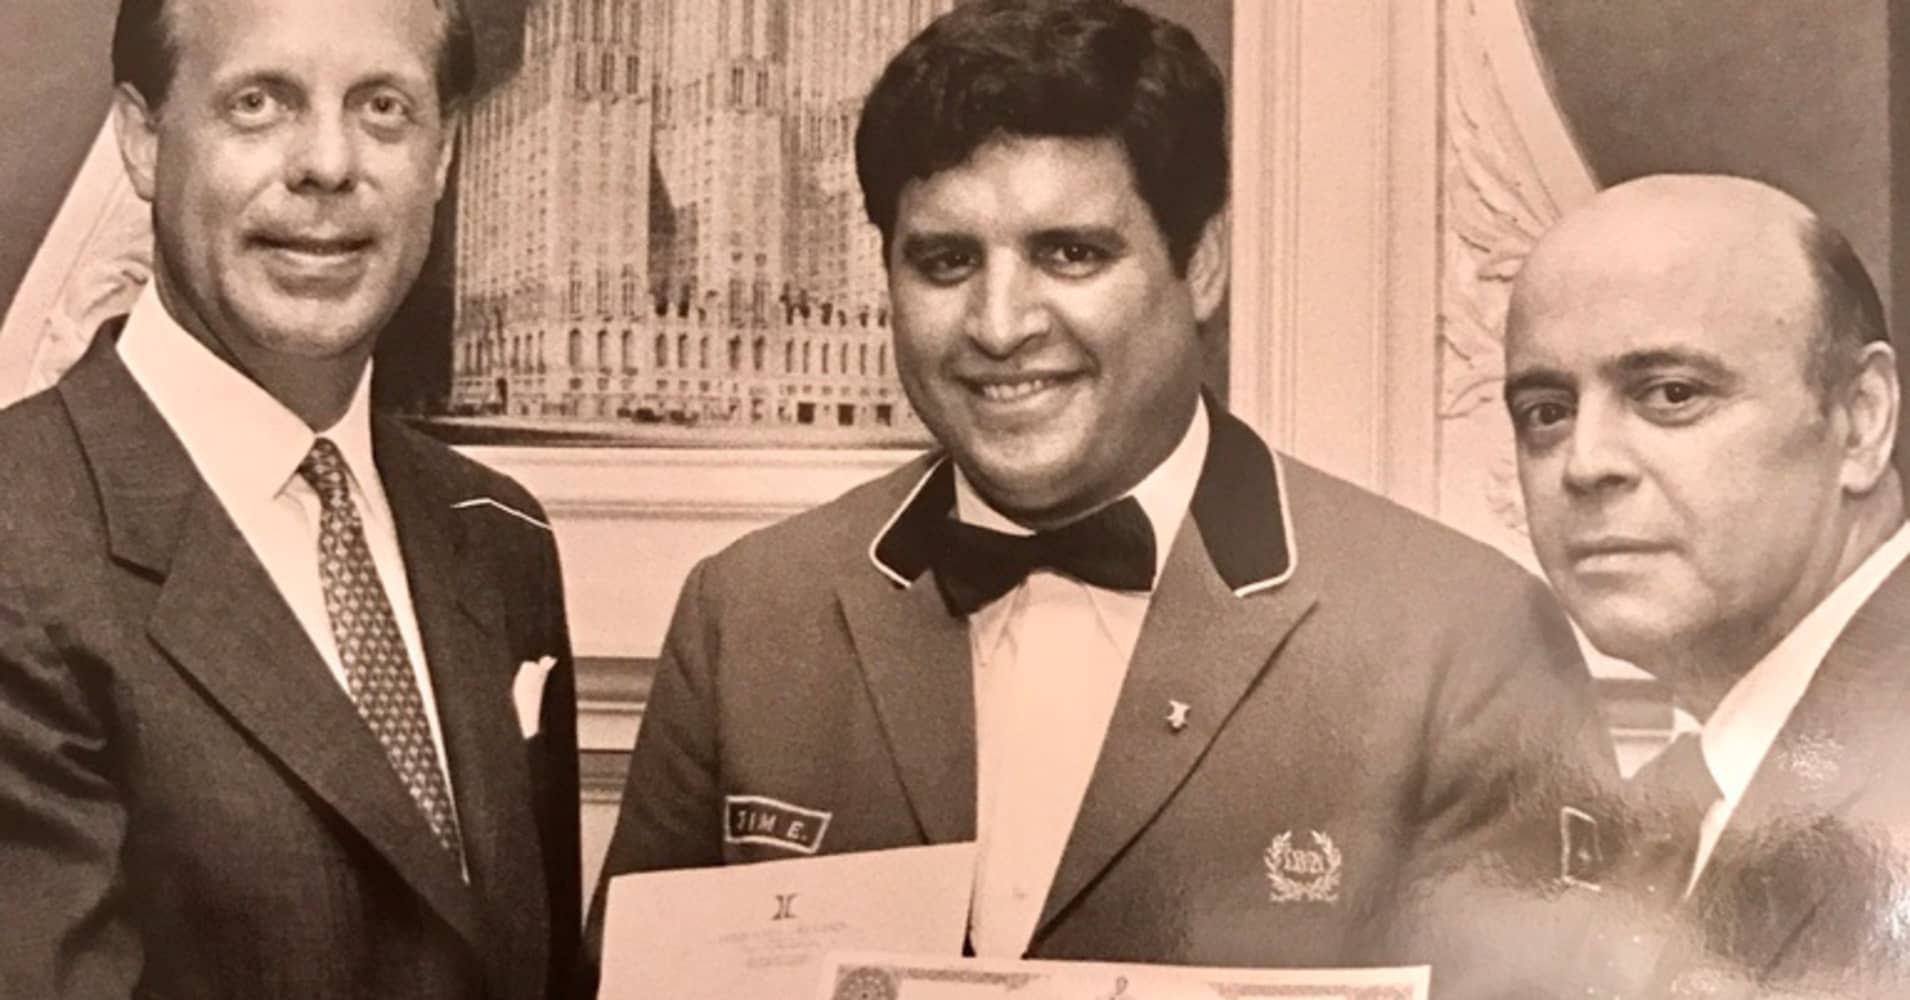 Jillali Elidrissi (center) has been a bellman at New York's Waldorf-Astoria hotel since April 1966.